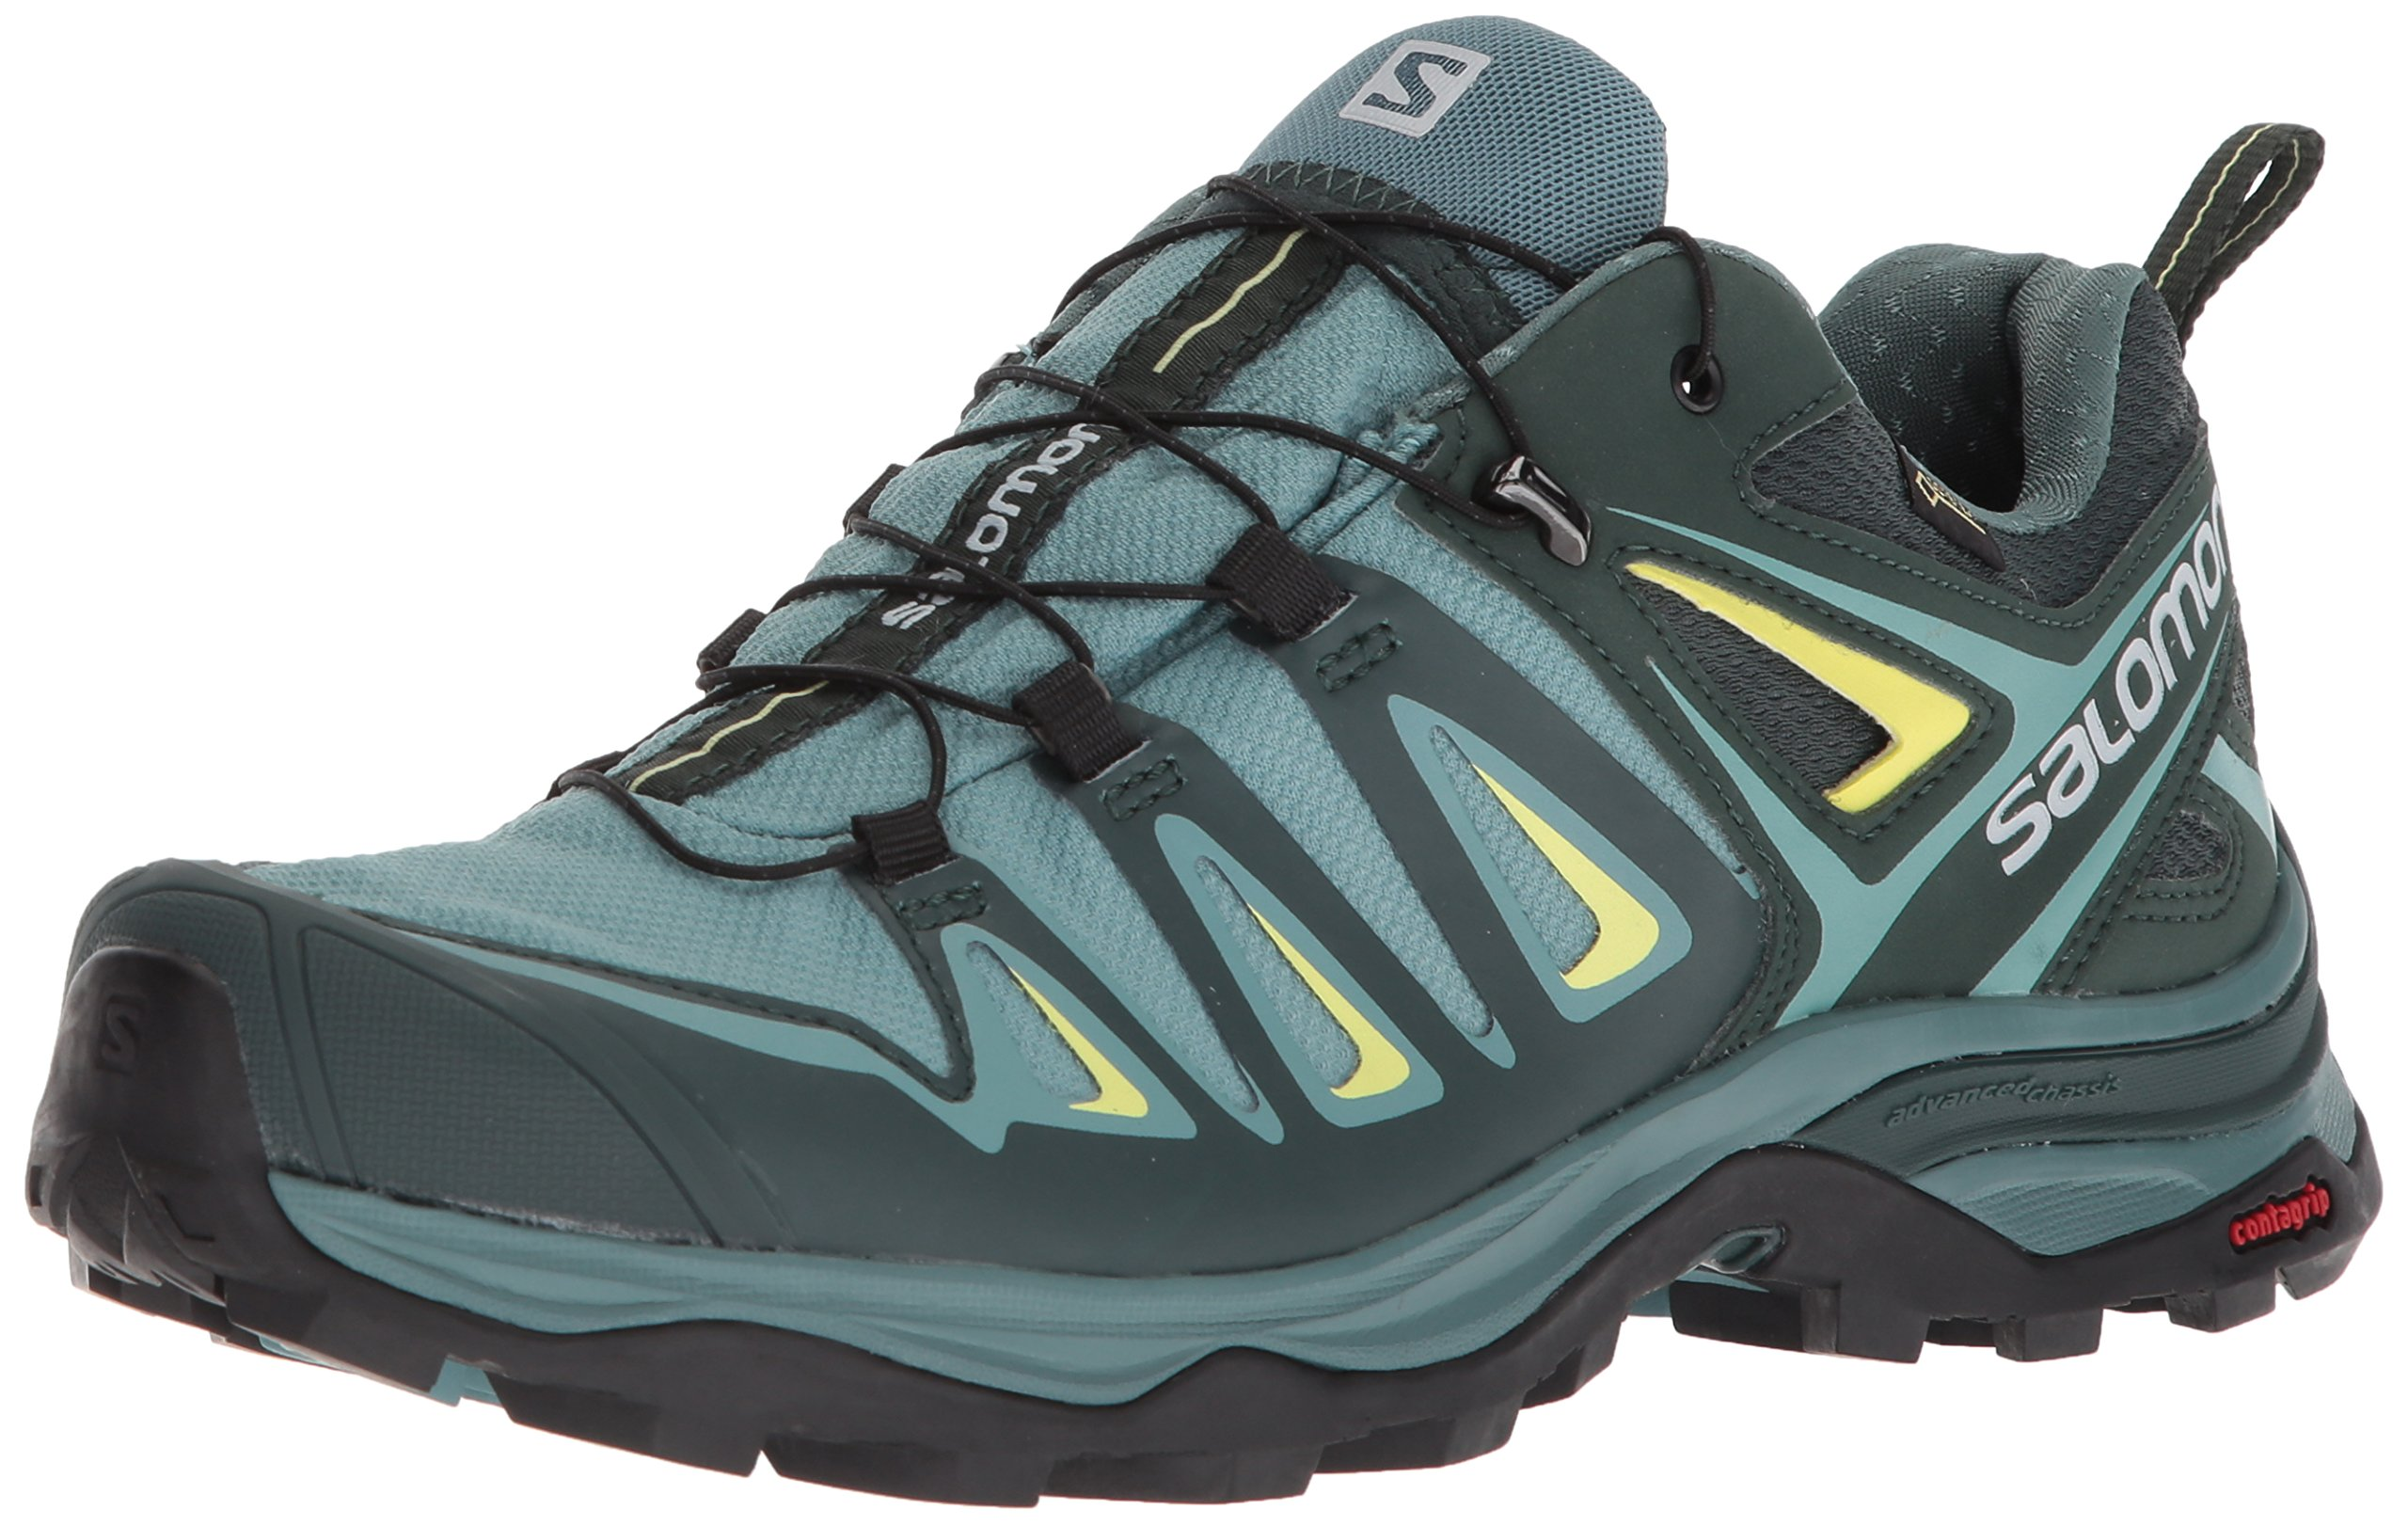 Salomon Women's X Ultra 3 GTX Trail Running Shoe, Artic, 5.5 M US by Salomon (Image #1)